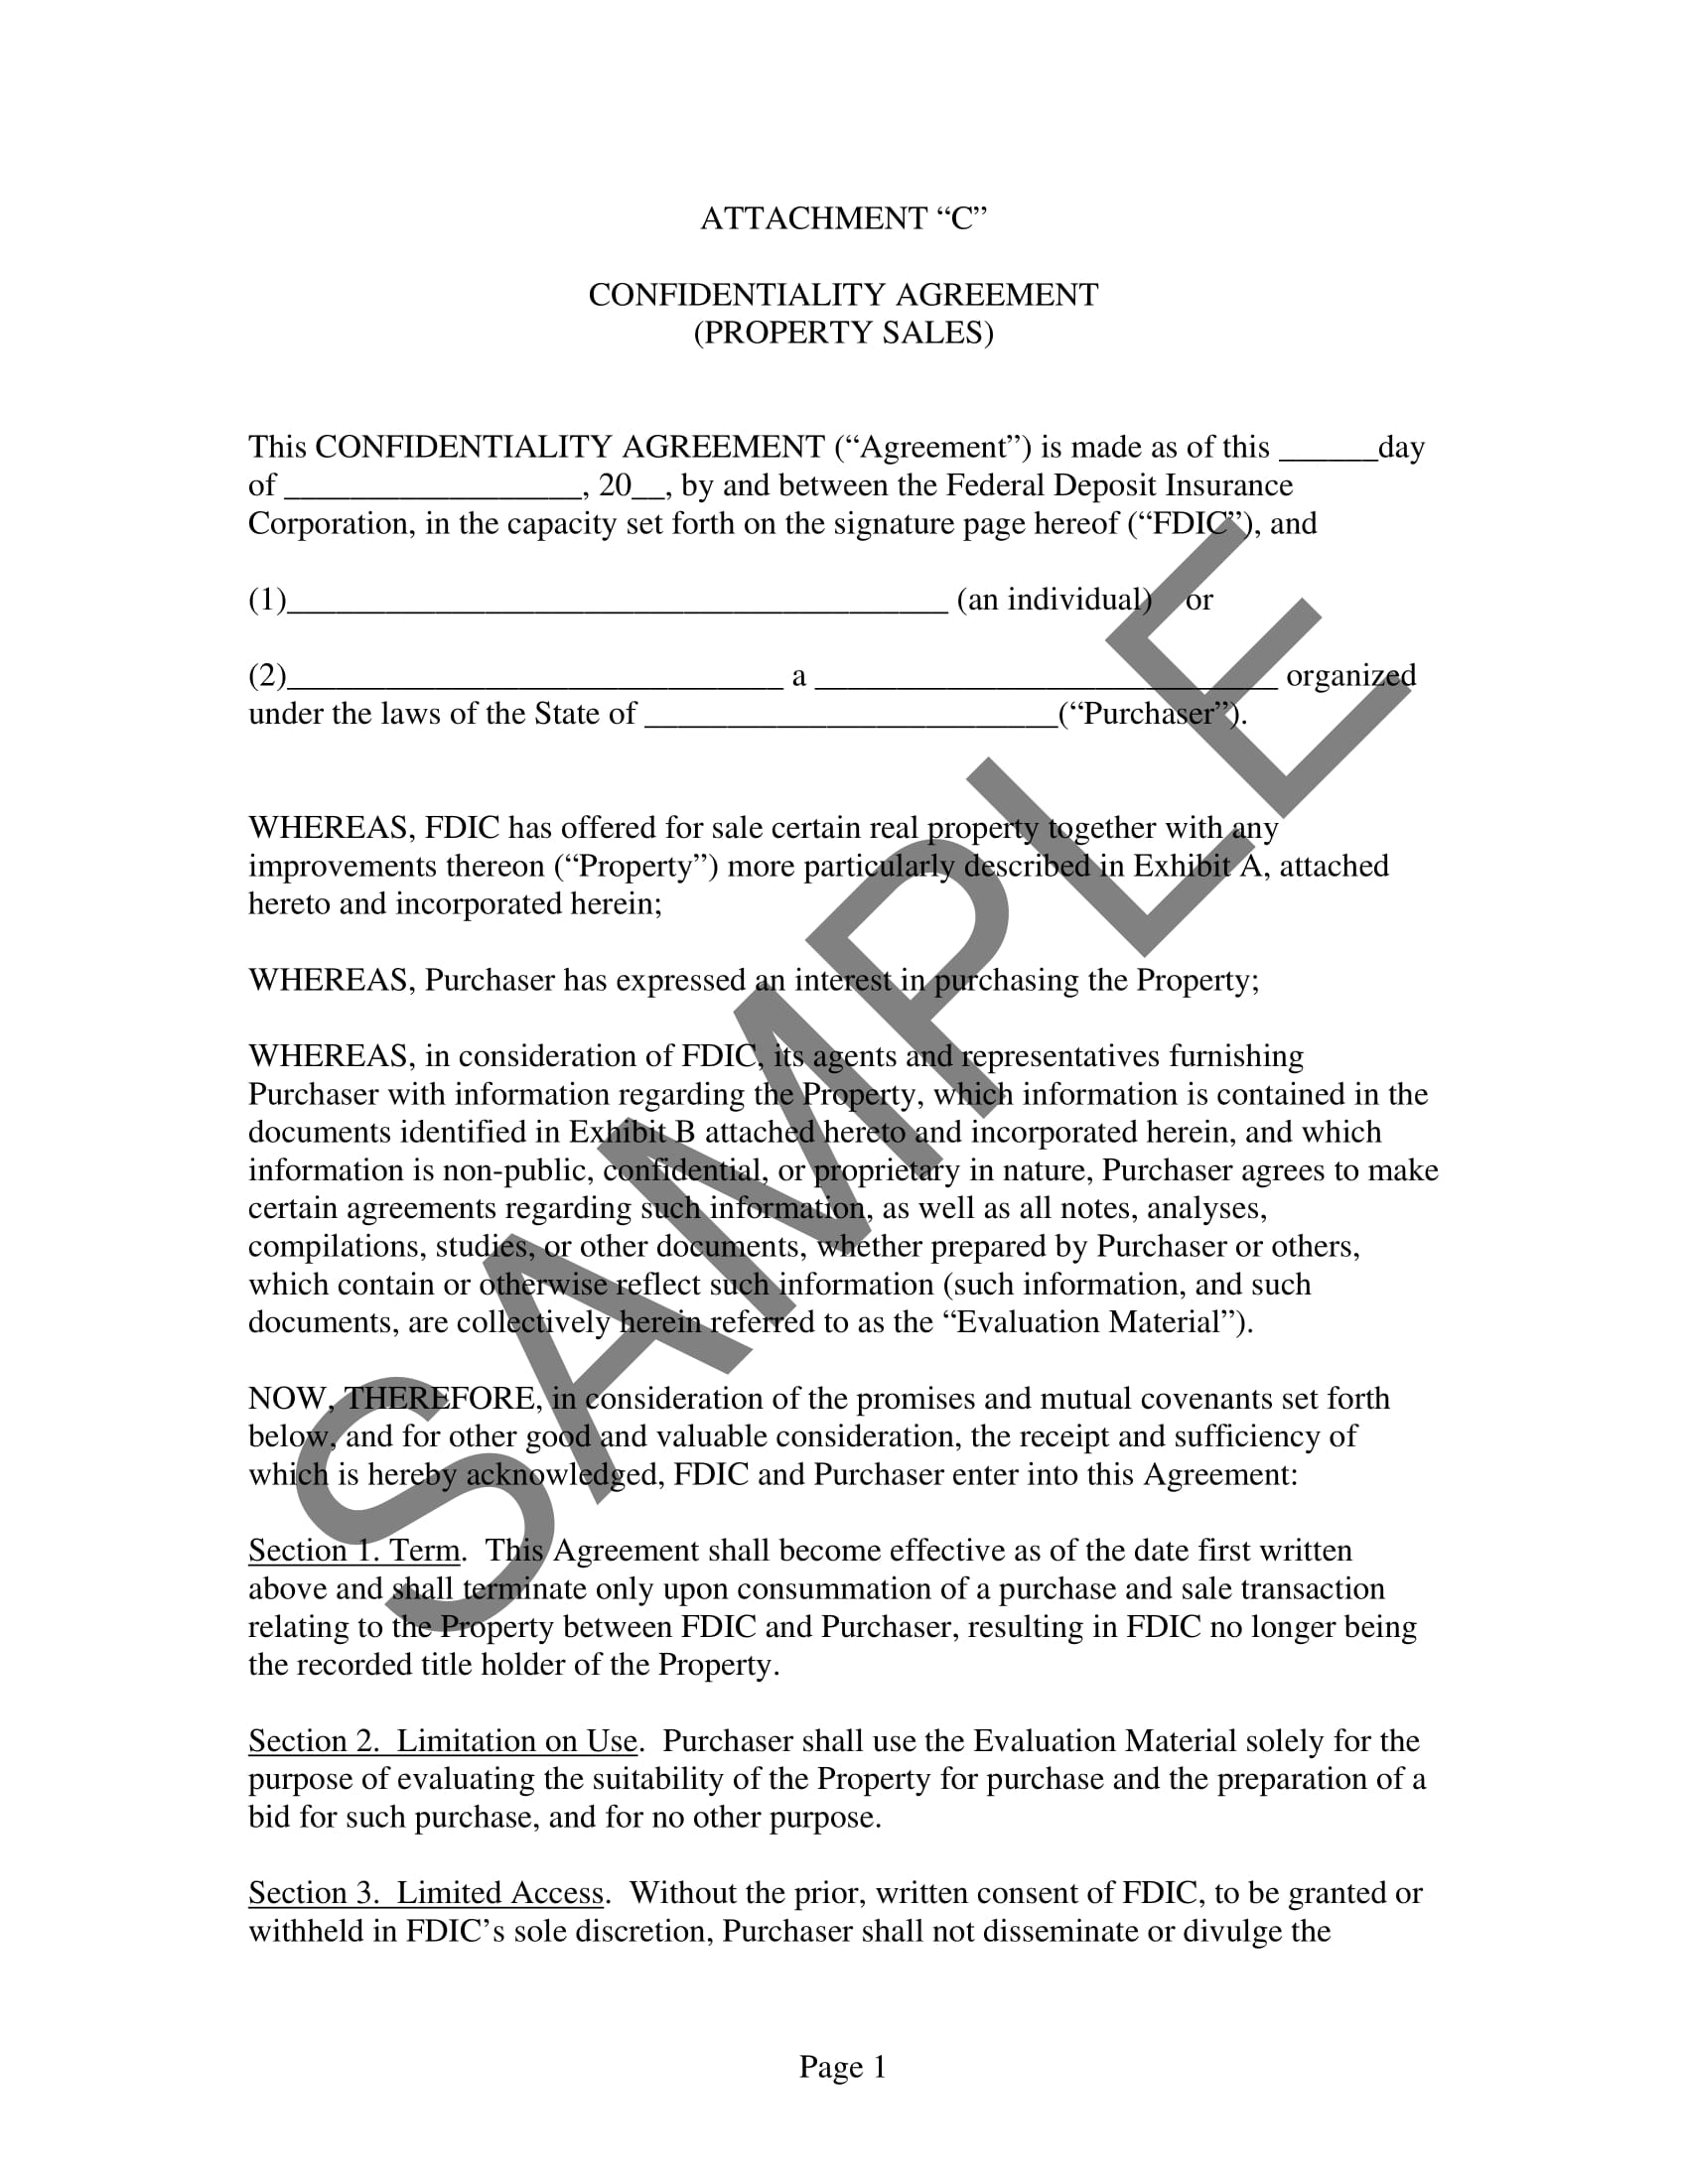 confidentiality agreement orepurchaser